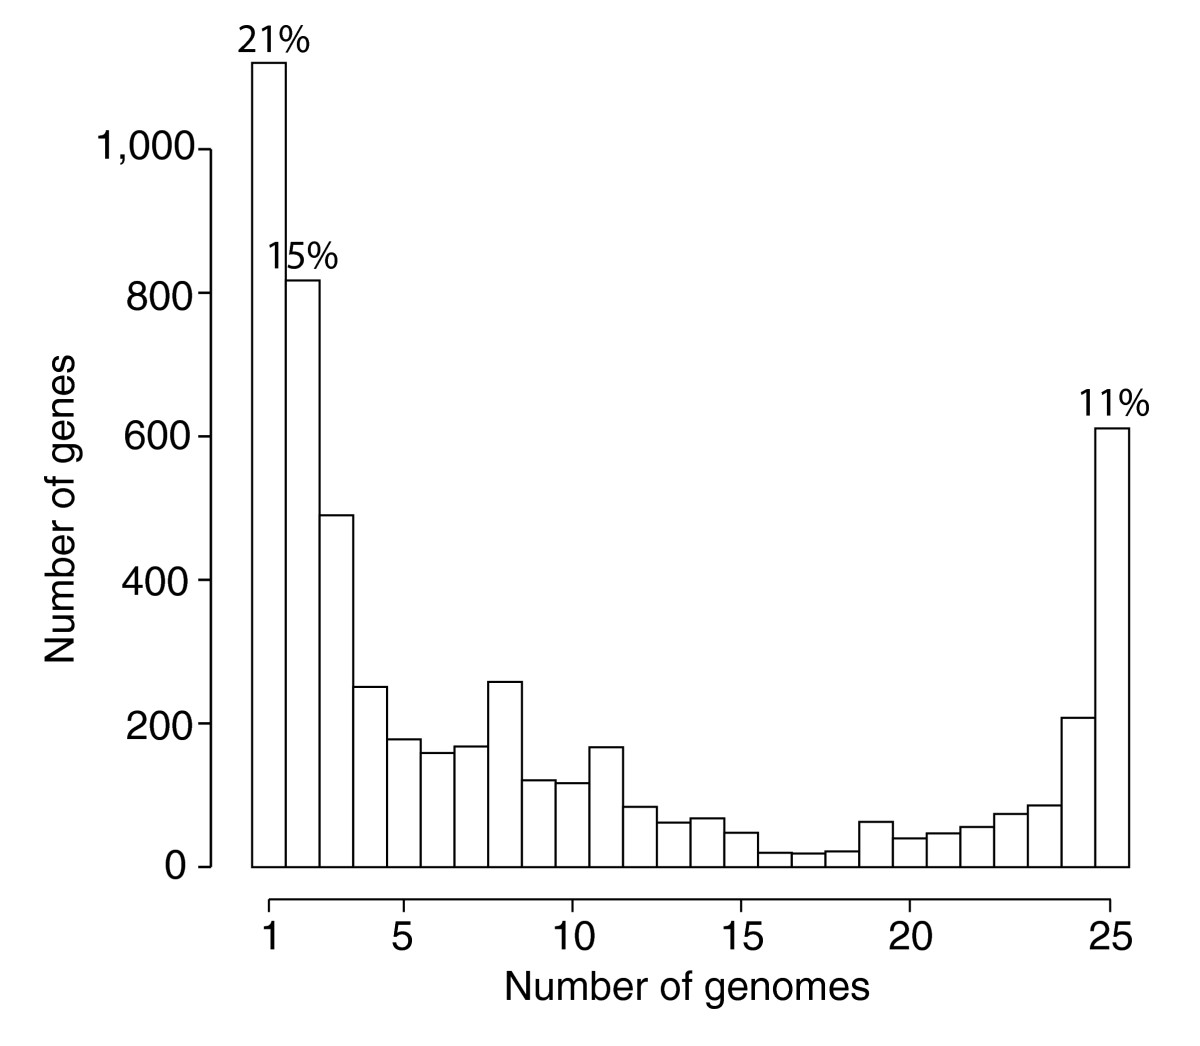 https://static-content.springer.com/image/art%3A10.1186%2Fgb-2007-8-5-r71/MediaObjects/13059_2006_Article_1553_Fig3_HTML.jpg